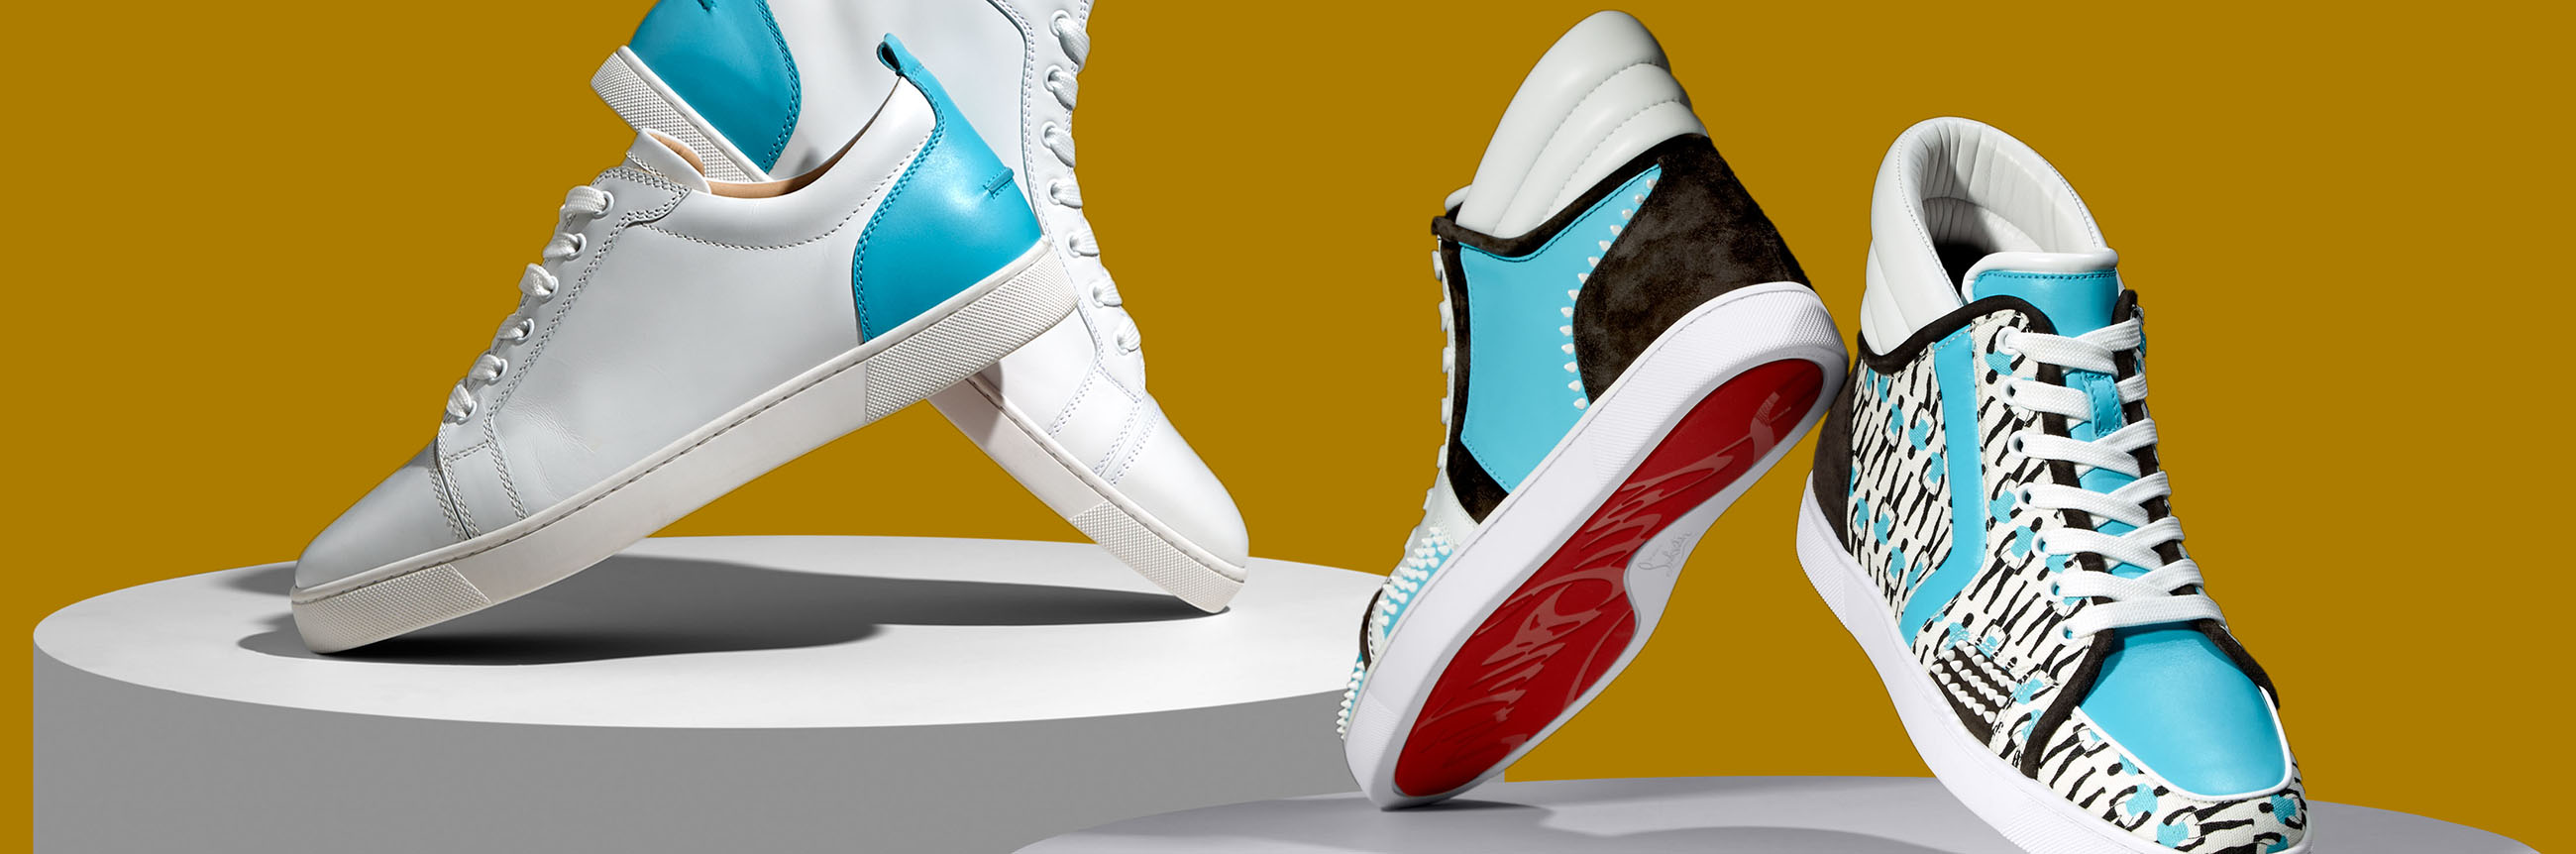 902978133a7d Christian Louboutin Announces Limited Edition Capsule Collection With  Sportyhenri.Com